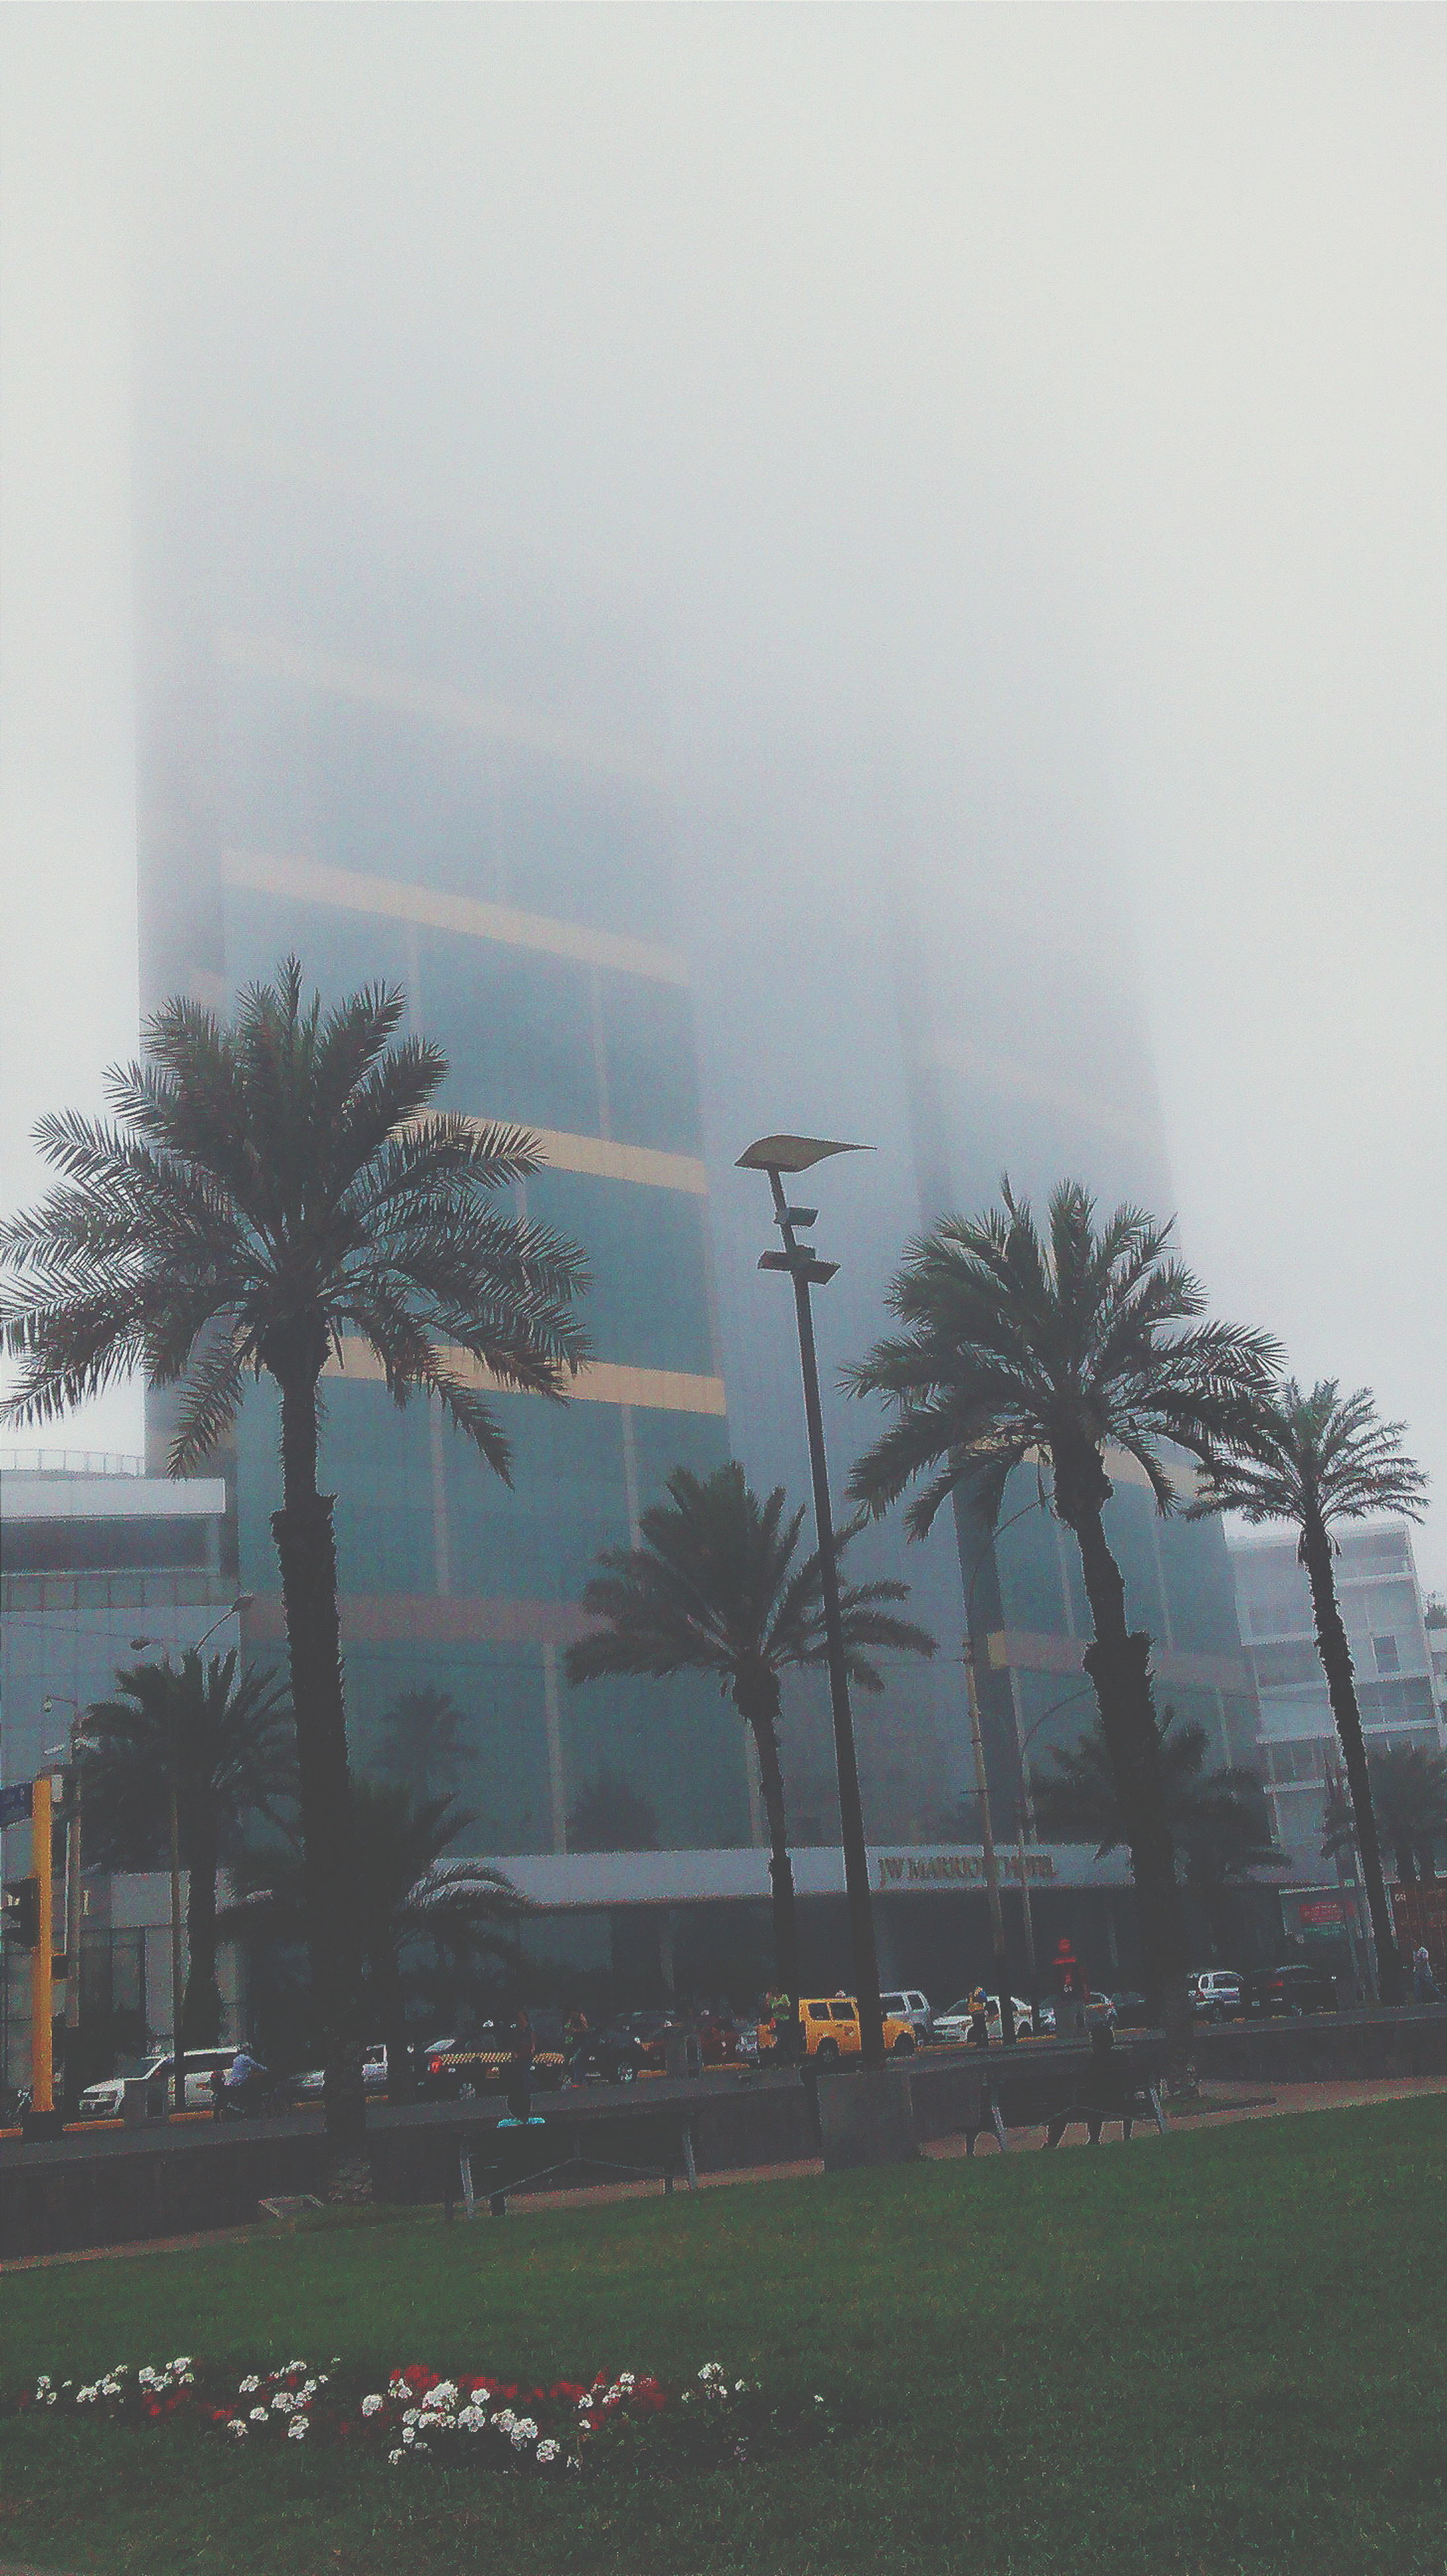 building exterior, architecture, built structure, tree, palm tree, sky, growth, fog, grass, city, foggy, nature, weather, outdoors, day, field, copy space, green color, building